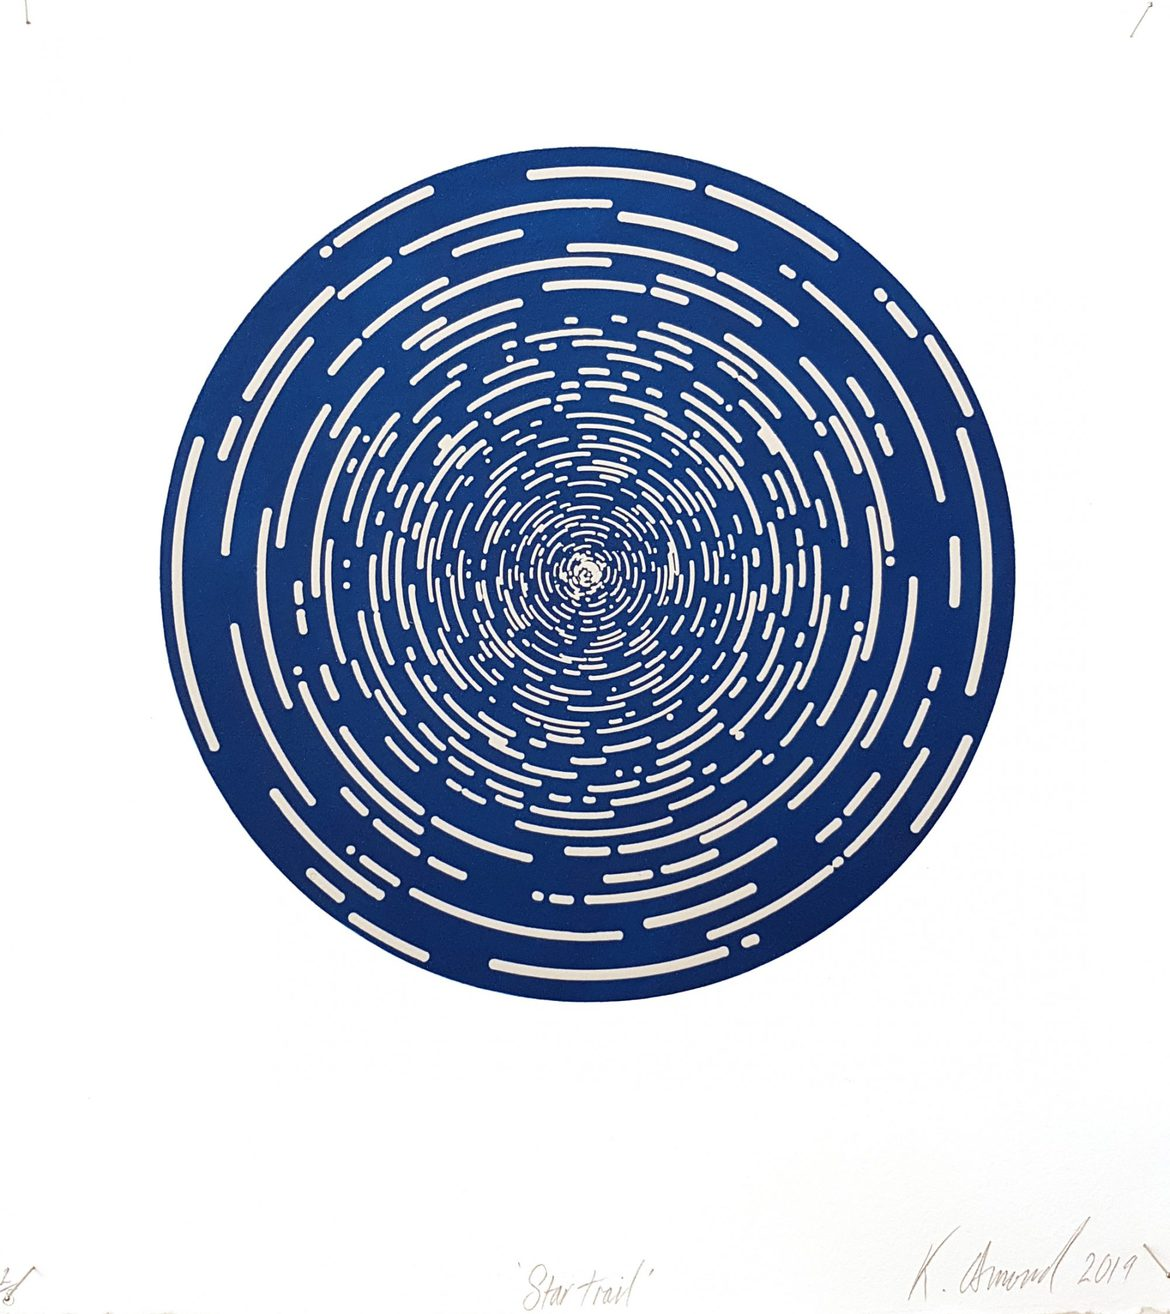 Star Trail (Midnight Blue), woodblock print, 300gsm hahnemühle deckled edge etching paper, edition of 5 +1AP, 35 x 31 cm